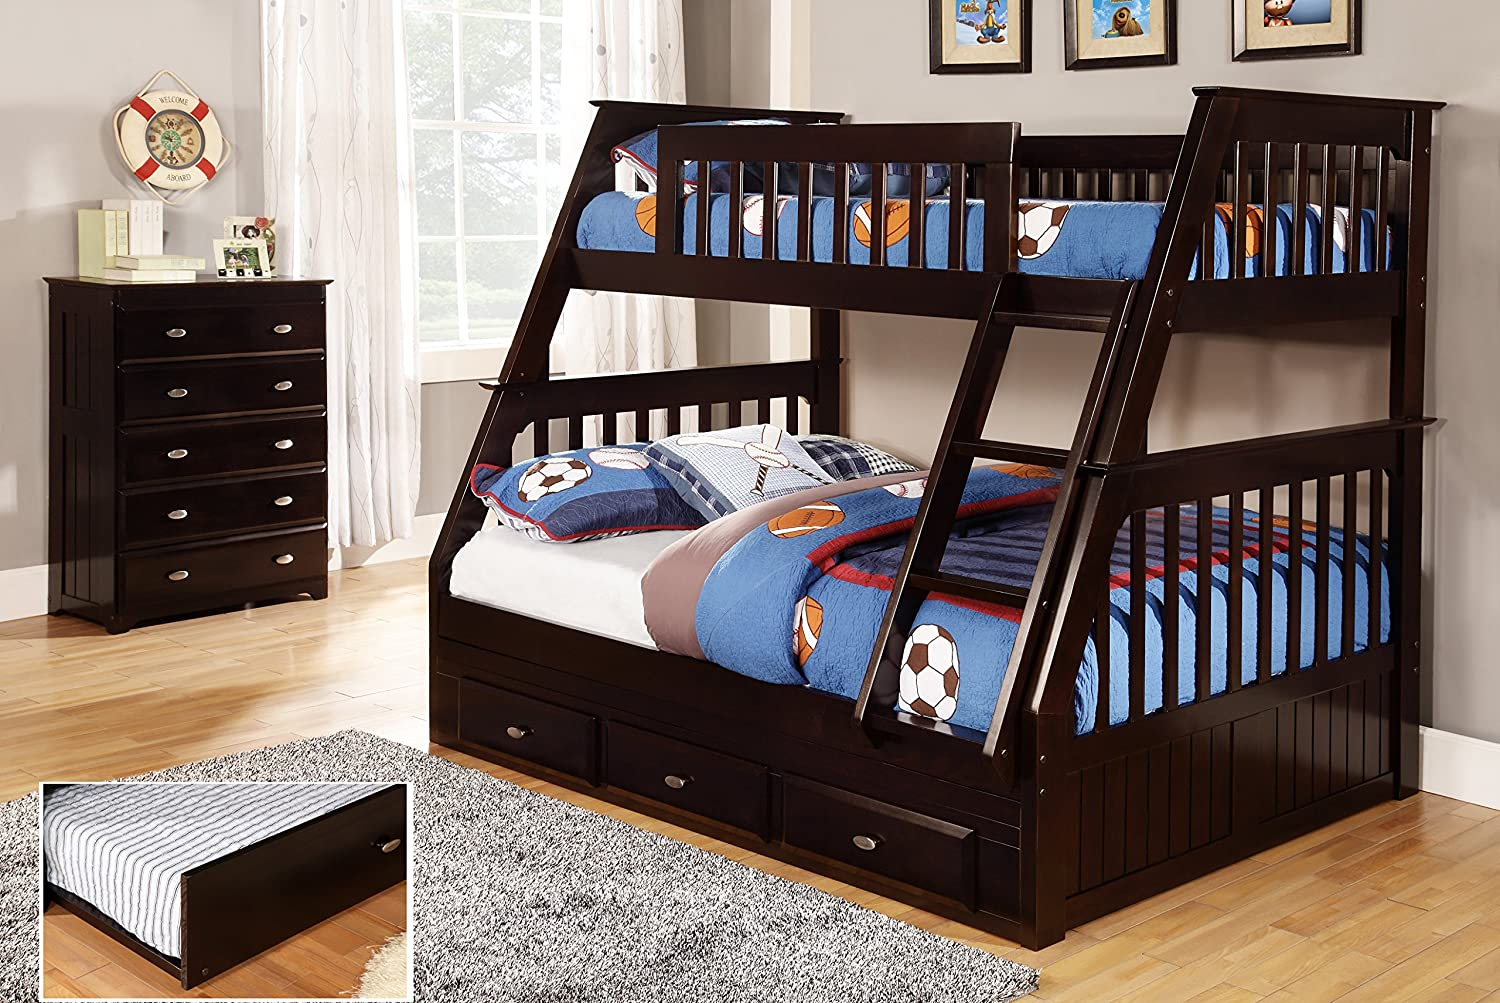 Amazon Com Discovery World Furniture Twin Over Full Bunk Bed With 3